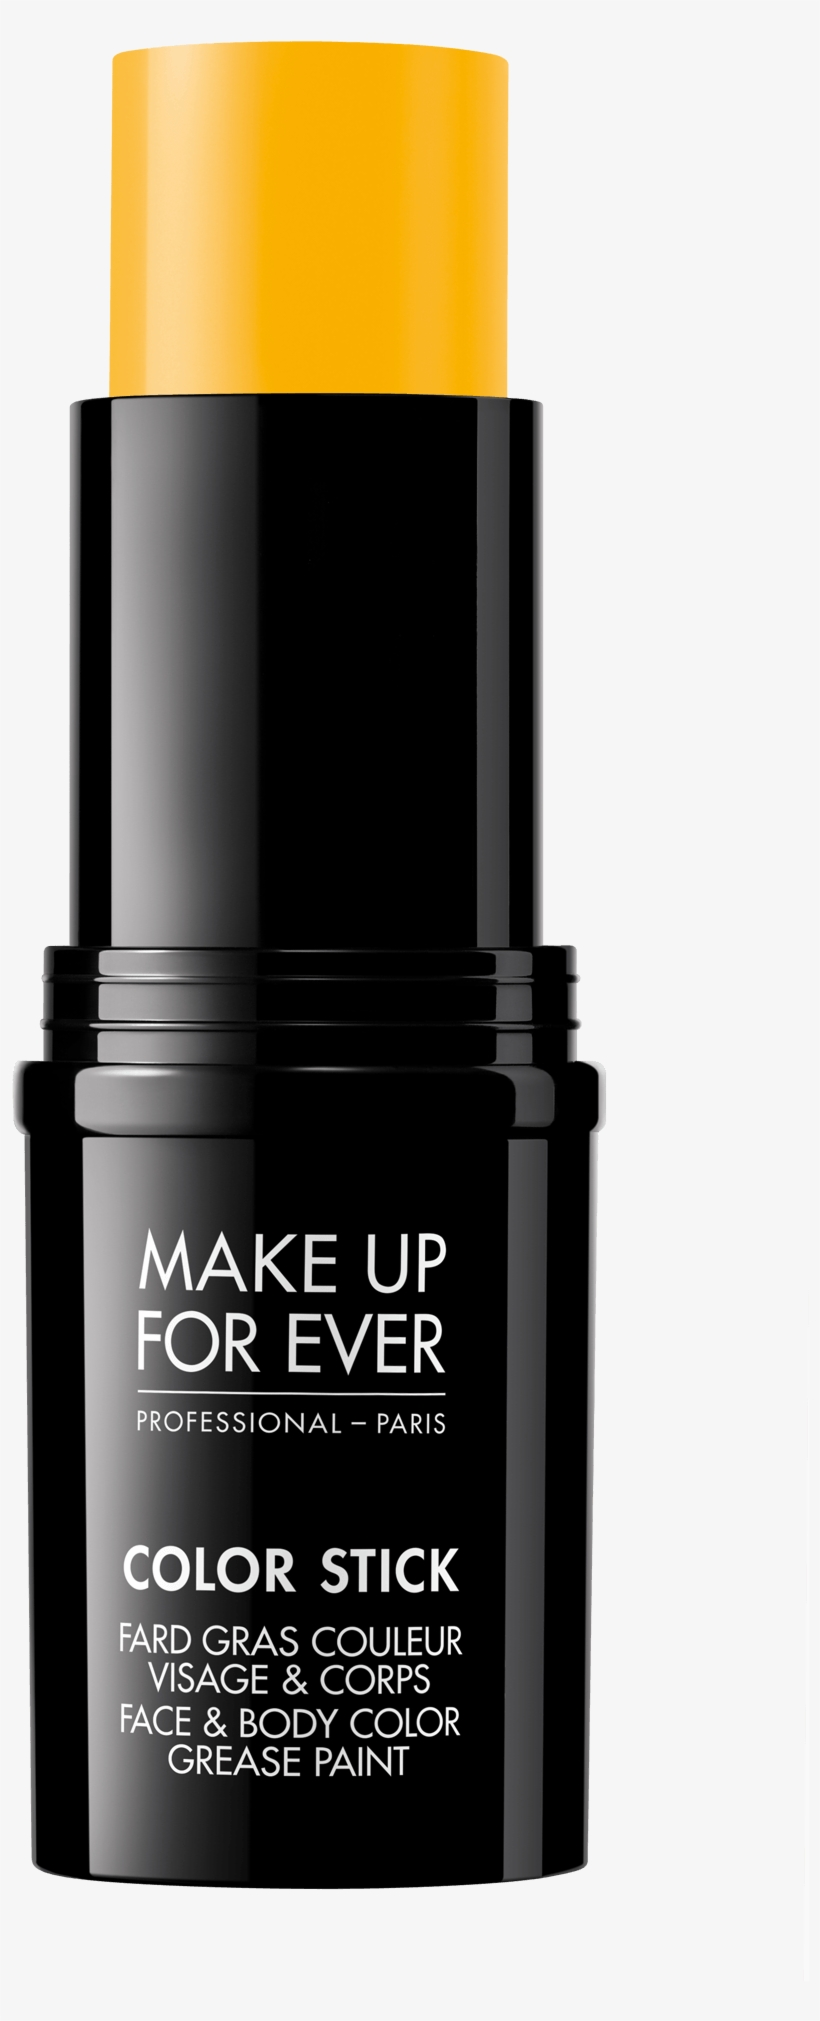 Make Up For Ever, transparent png #8410657